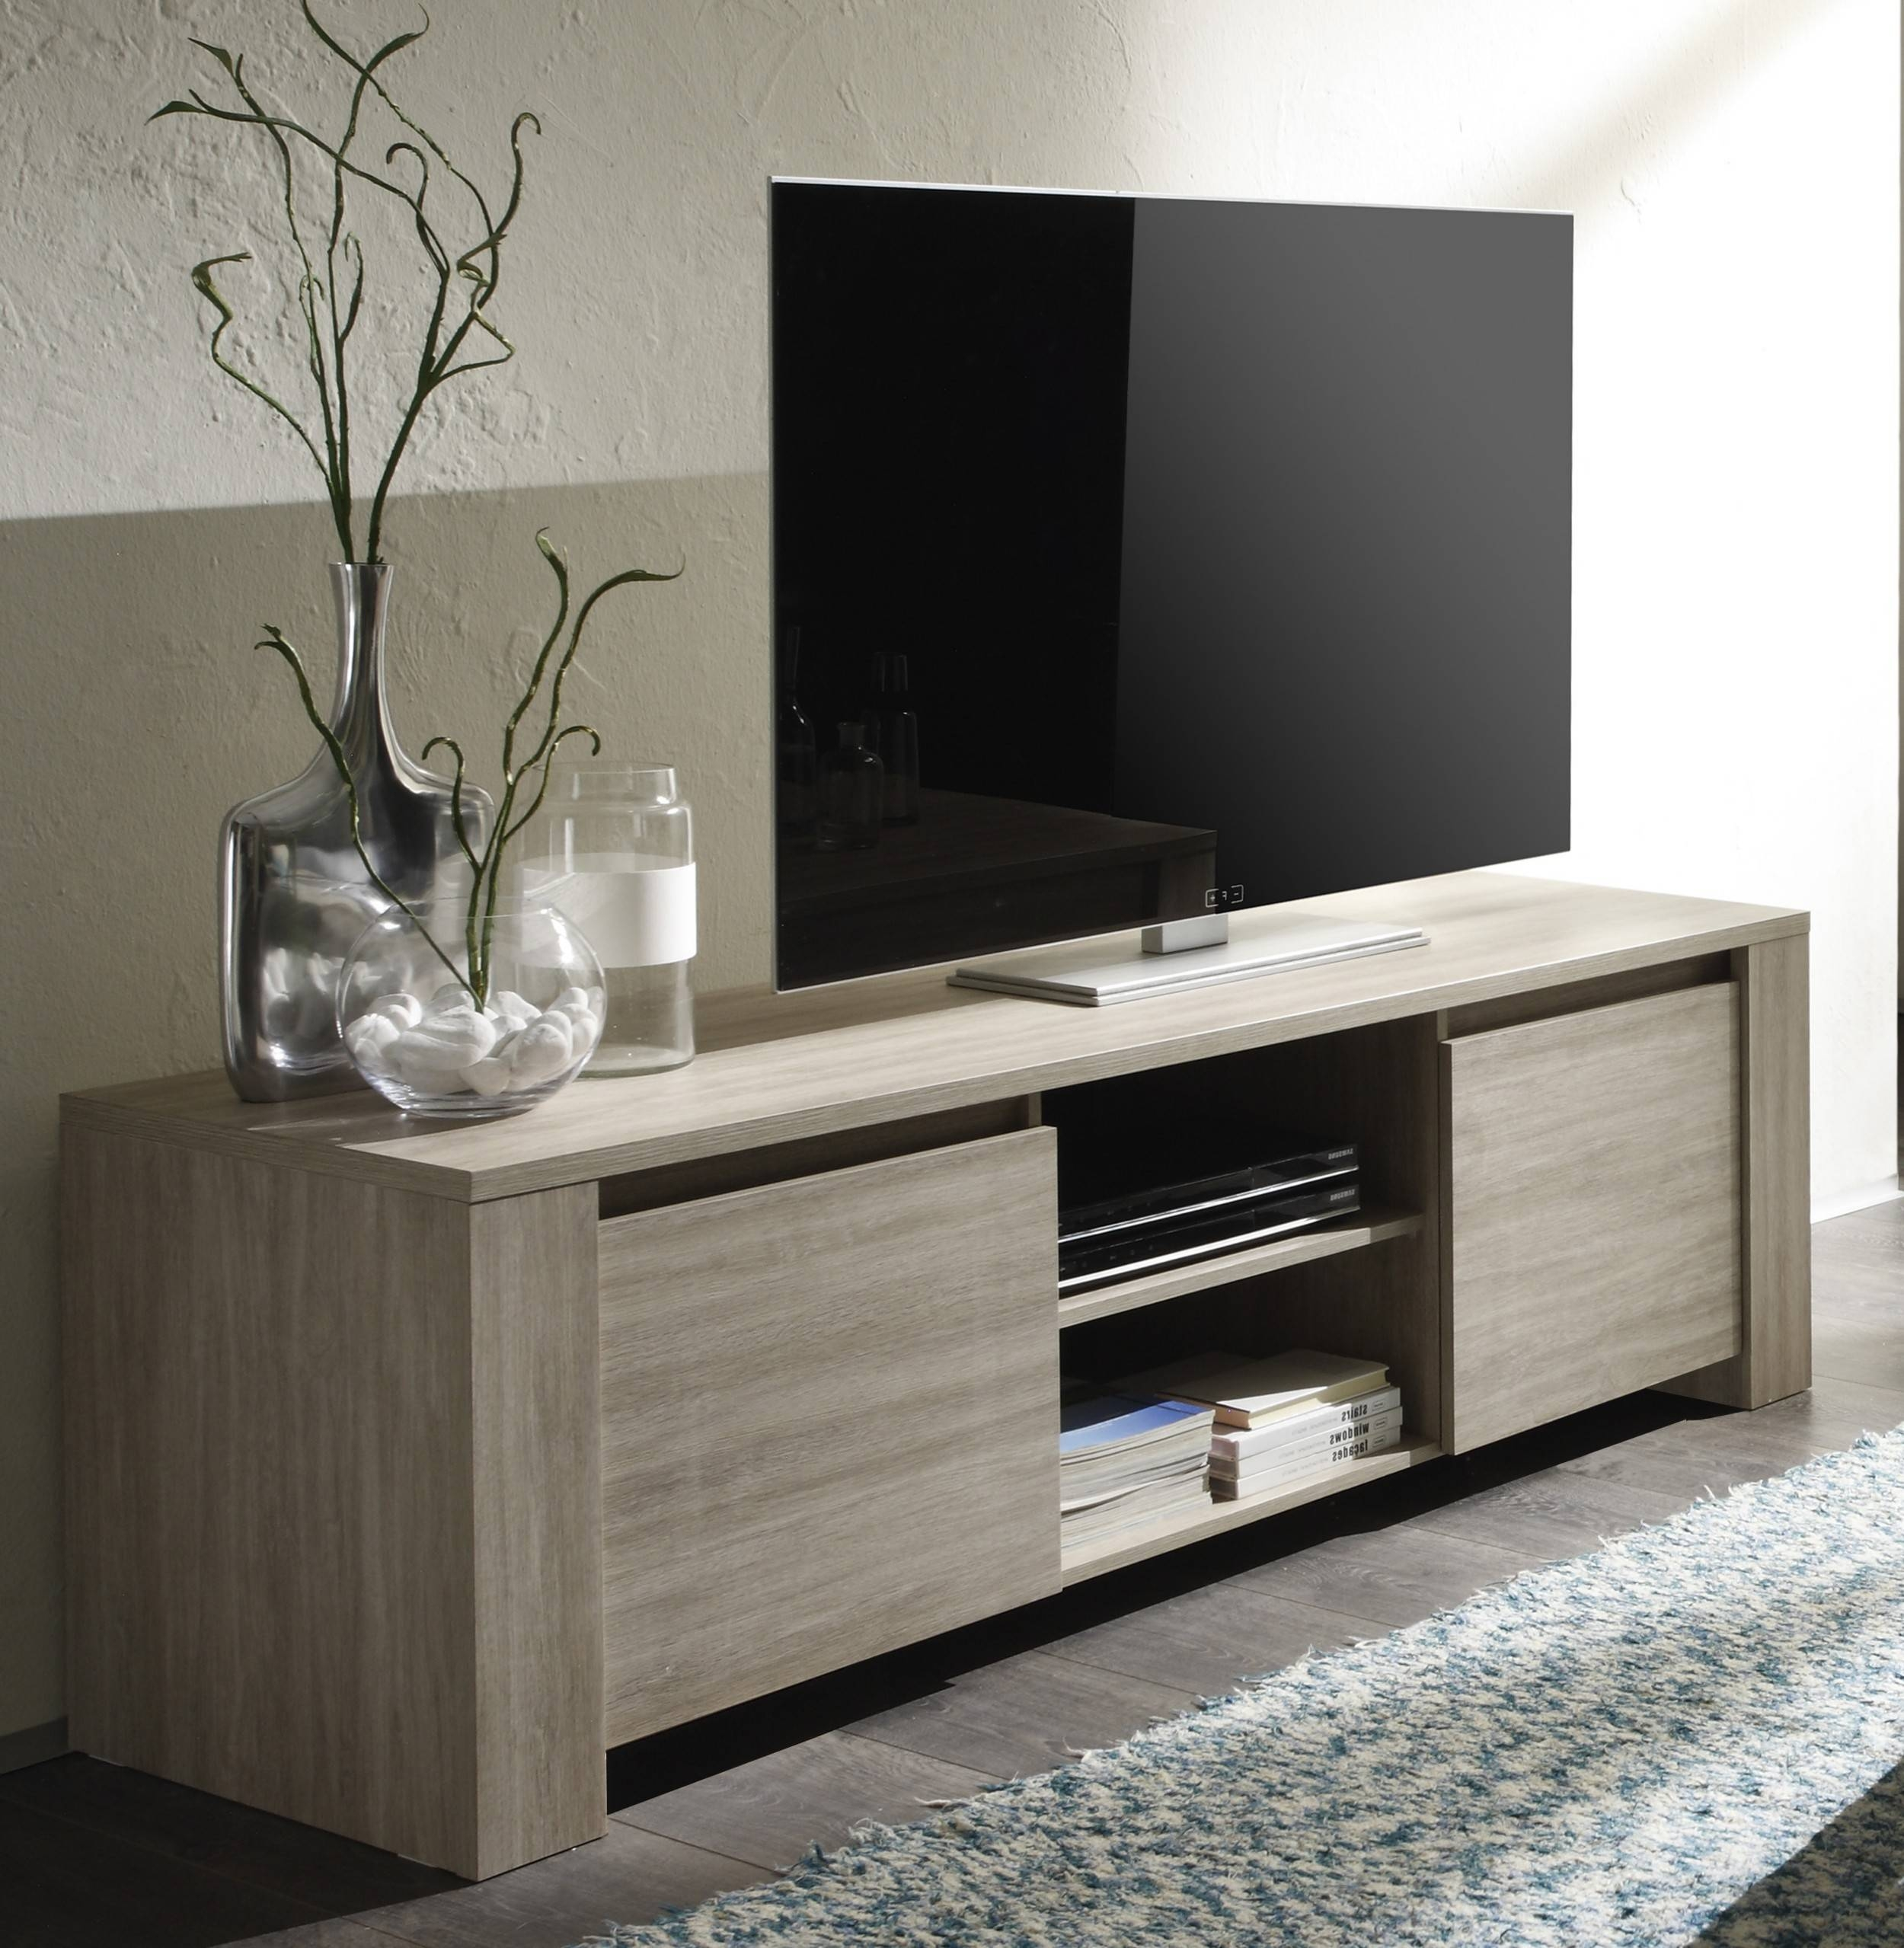 Elba Sideboard Buy Online At Best Price - Sohomod within Sideboards and Tv Stands (Image 9 of 30)